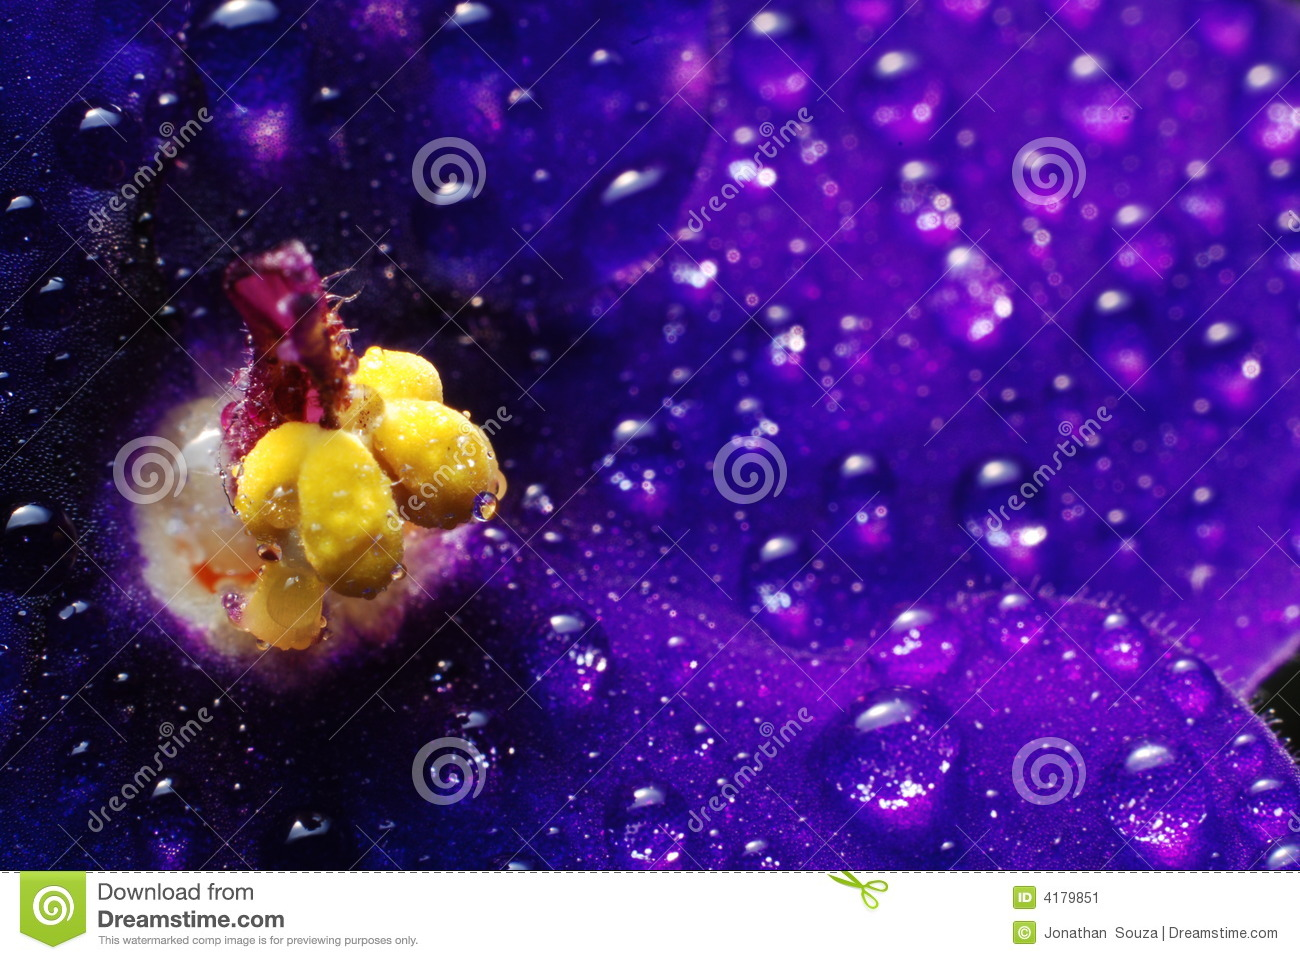 African Violet with droplets 02